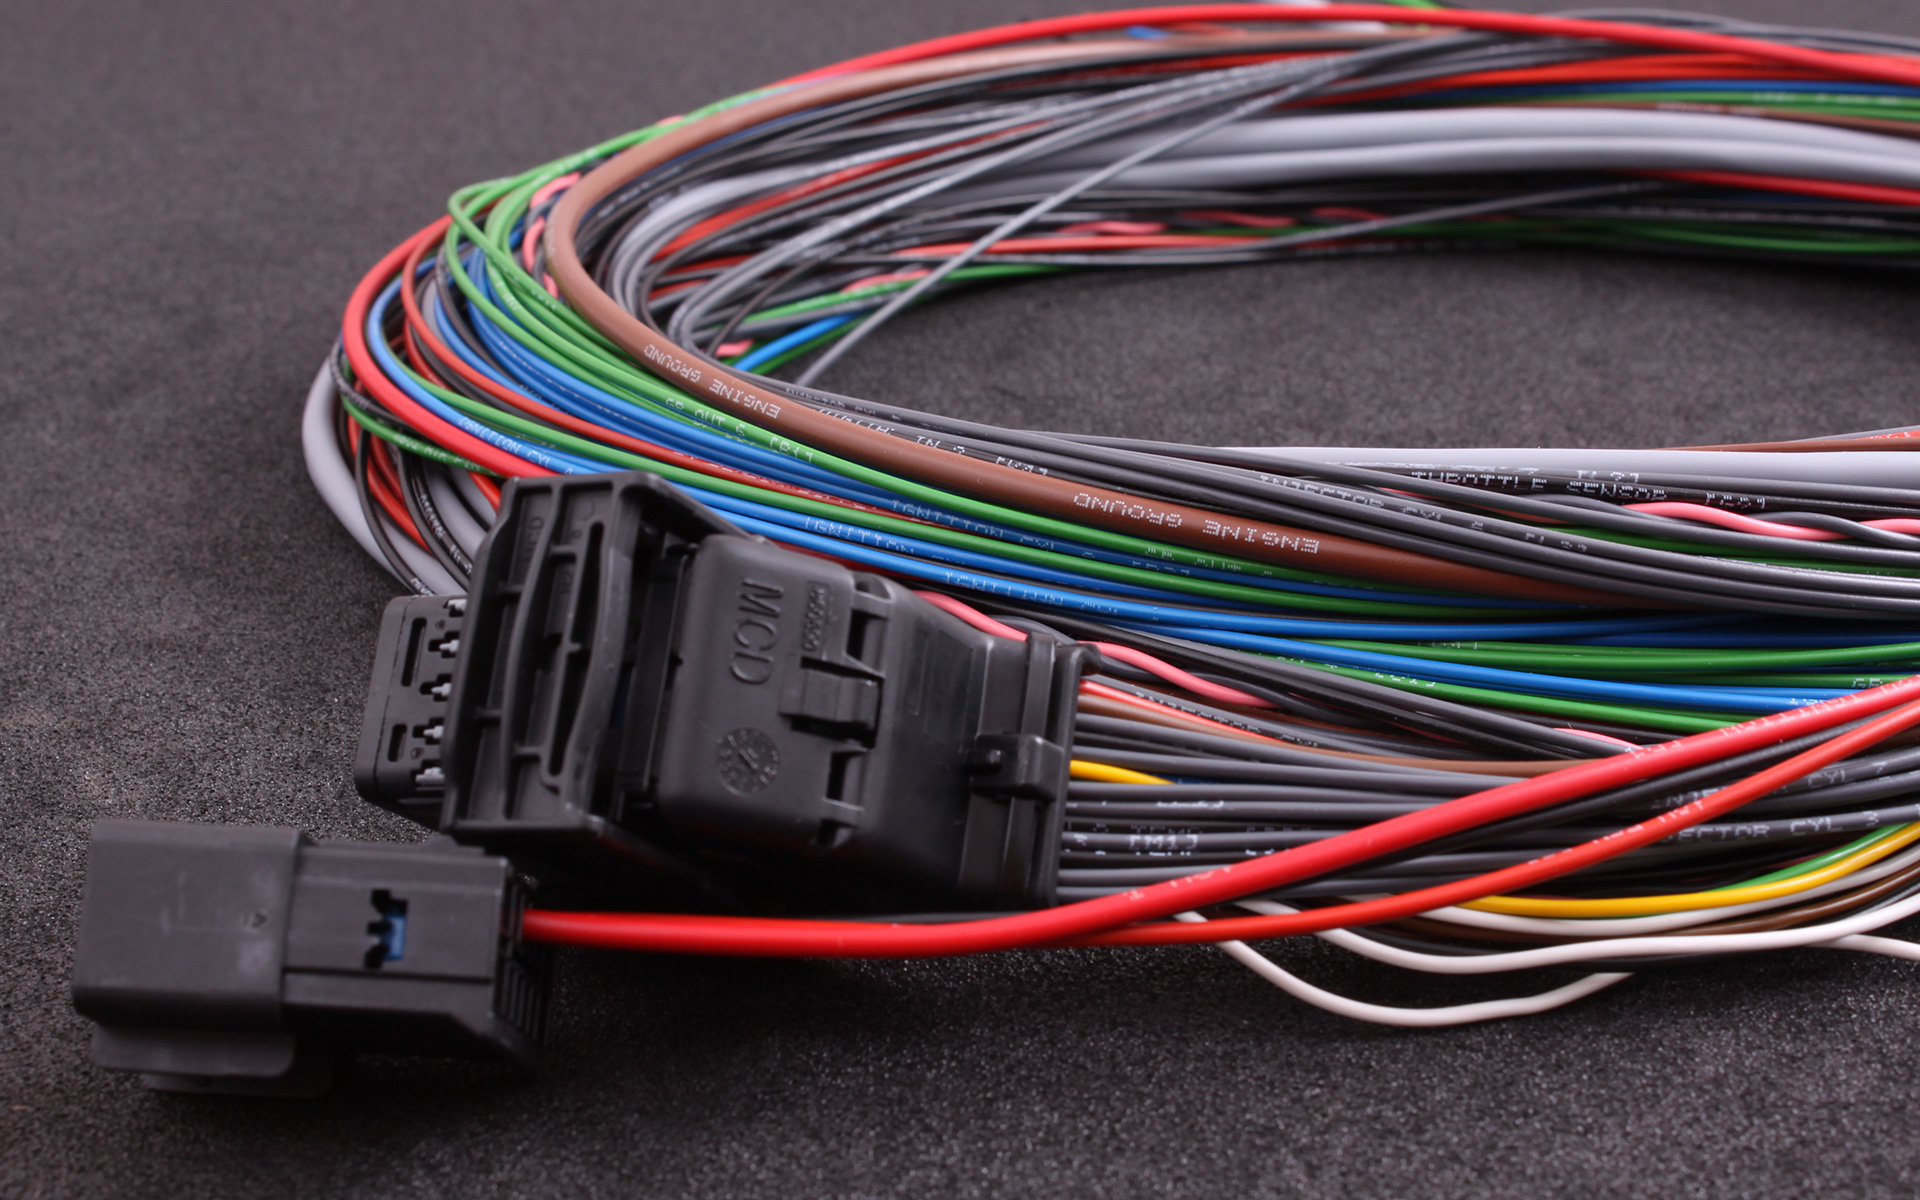 Maxxecu Street Avancerad Instegs Motorstyrning Performance Wiring Harness All Consists Of High Quality Thin Walled Cable Cables Are Labeled With Their Functions We Have Done Everything For A Stress Free